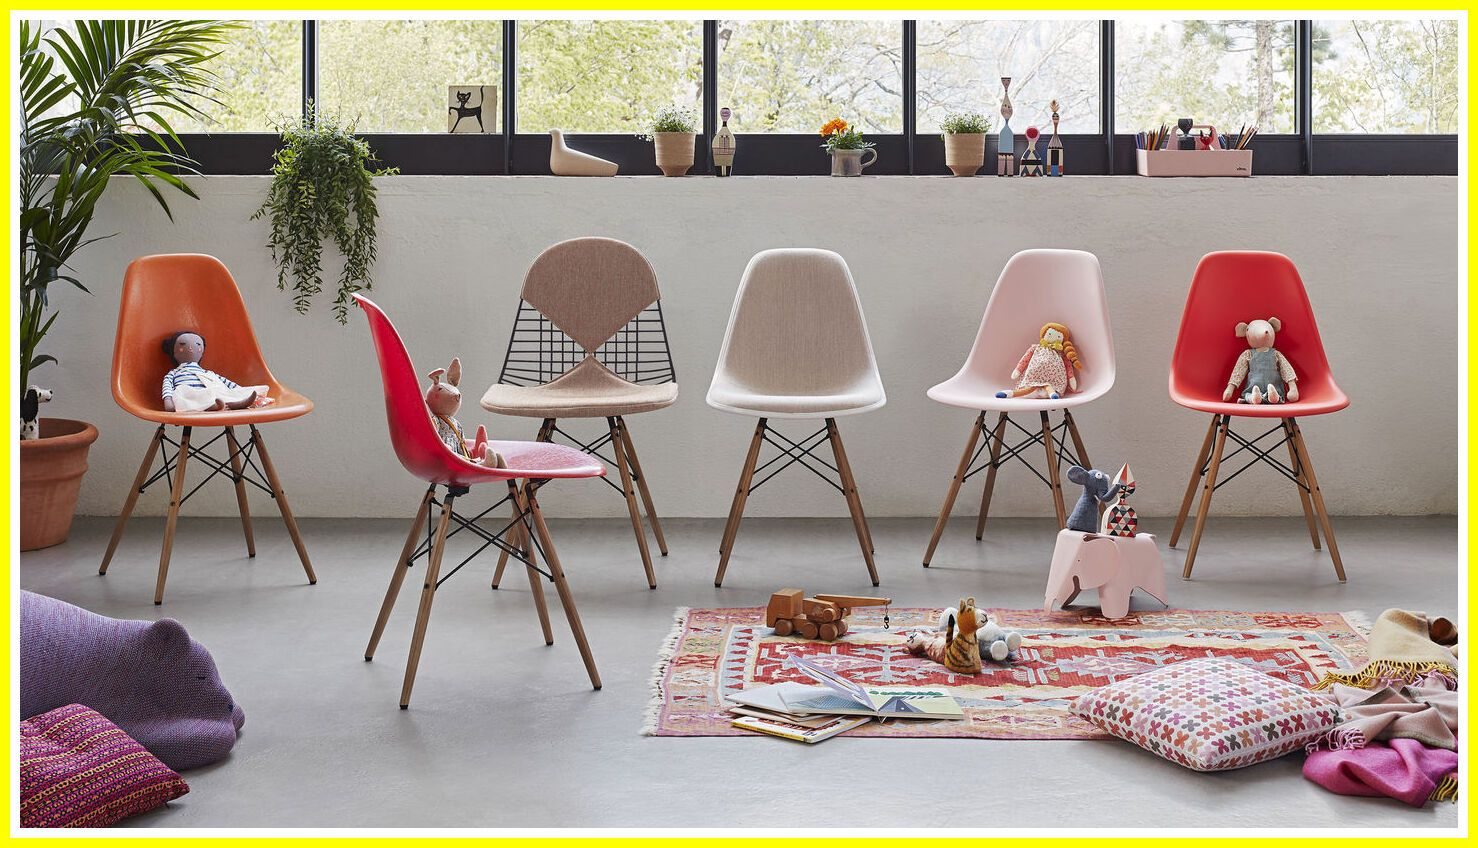 35 Reference Of Plastic Chair Eames Gebraucht In 2020 Eames Plastic Chair Chair Plastic Chair